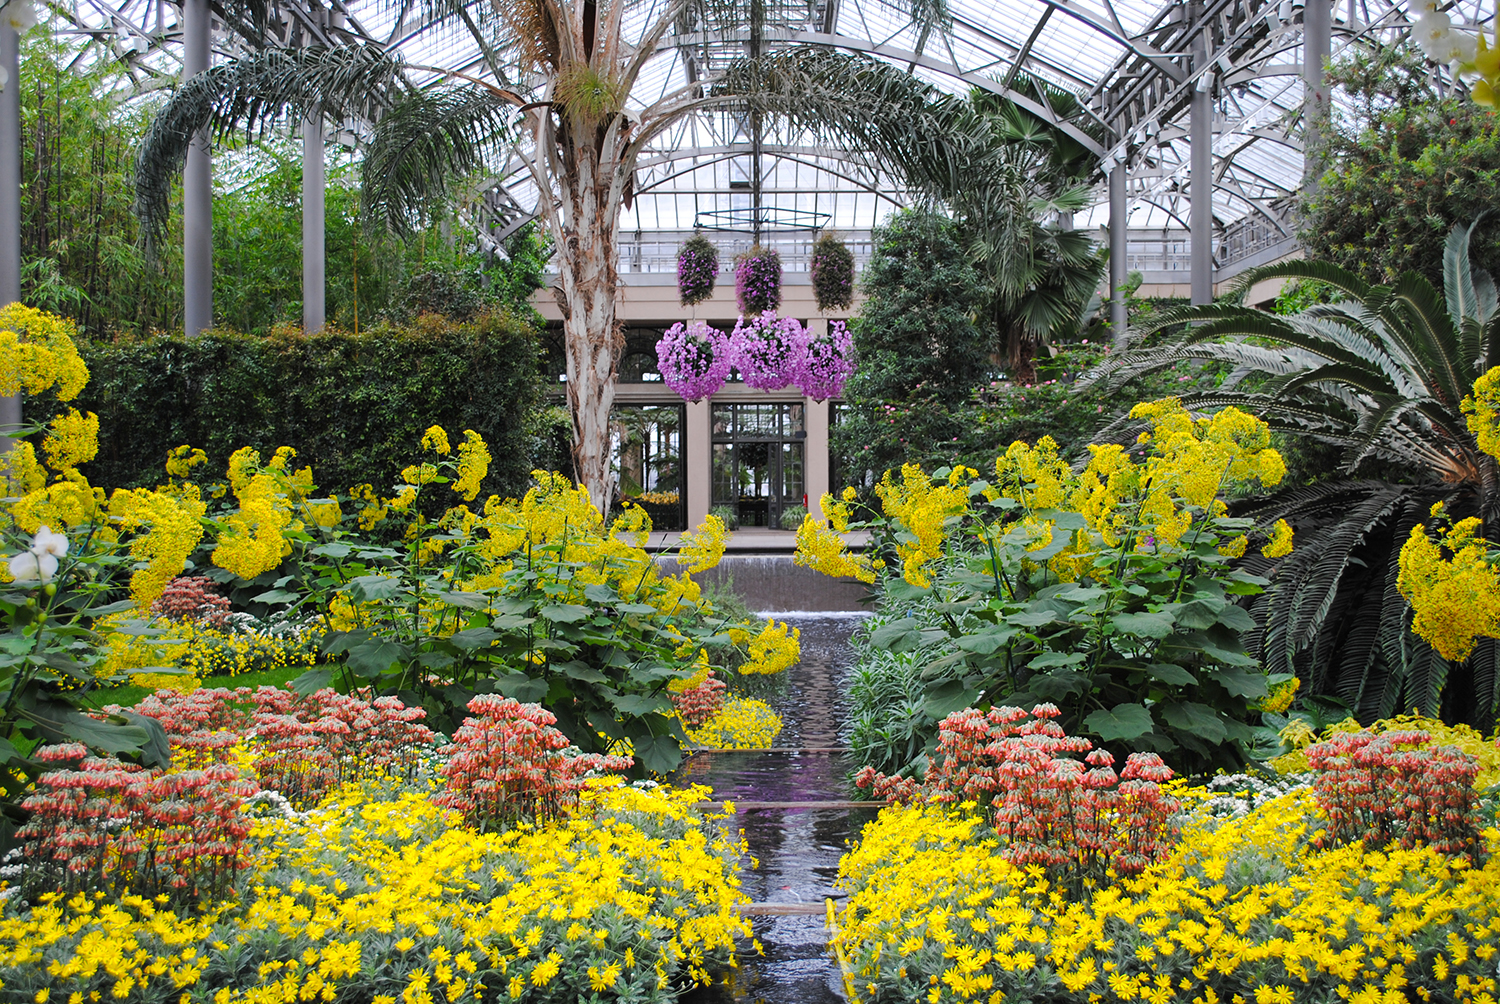 Much of the conservatory featured the towering, yellow flowering  Roldana petasitis.   Here it carpeted underneath by the coral, tubular flowers of  Kalanchoe  x  houghtonii  and the golden  Euryops pectinatus.